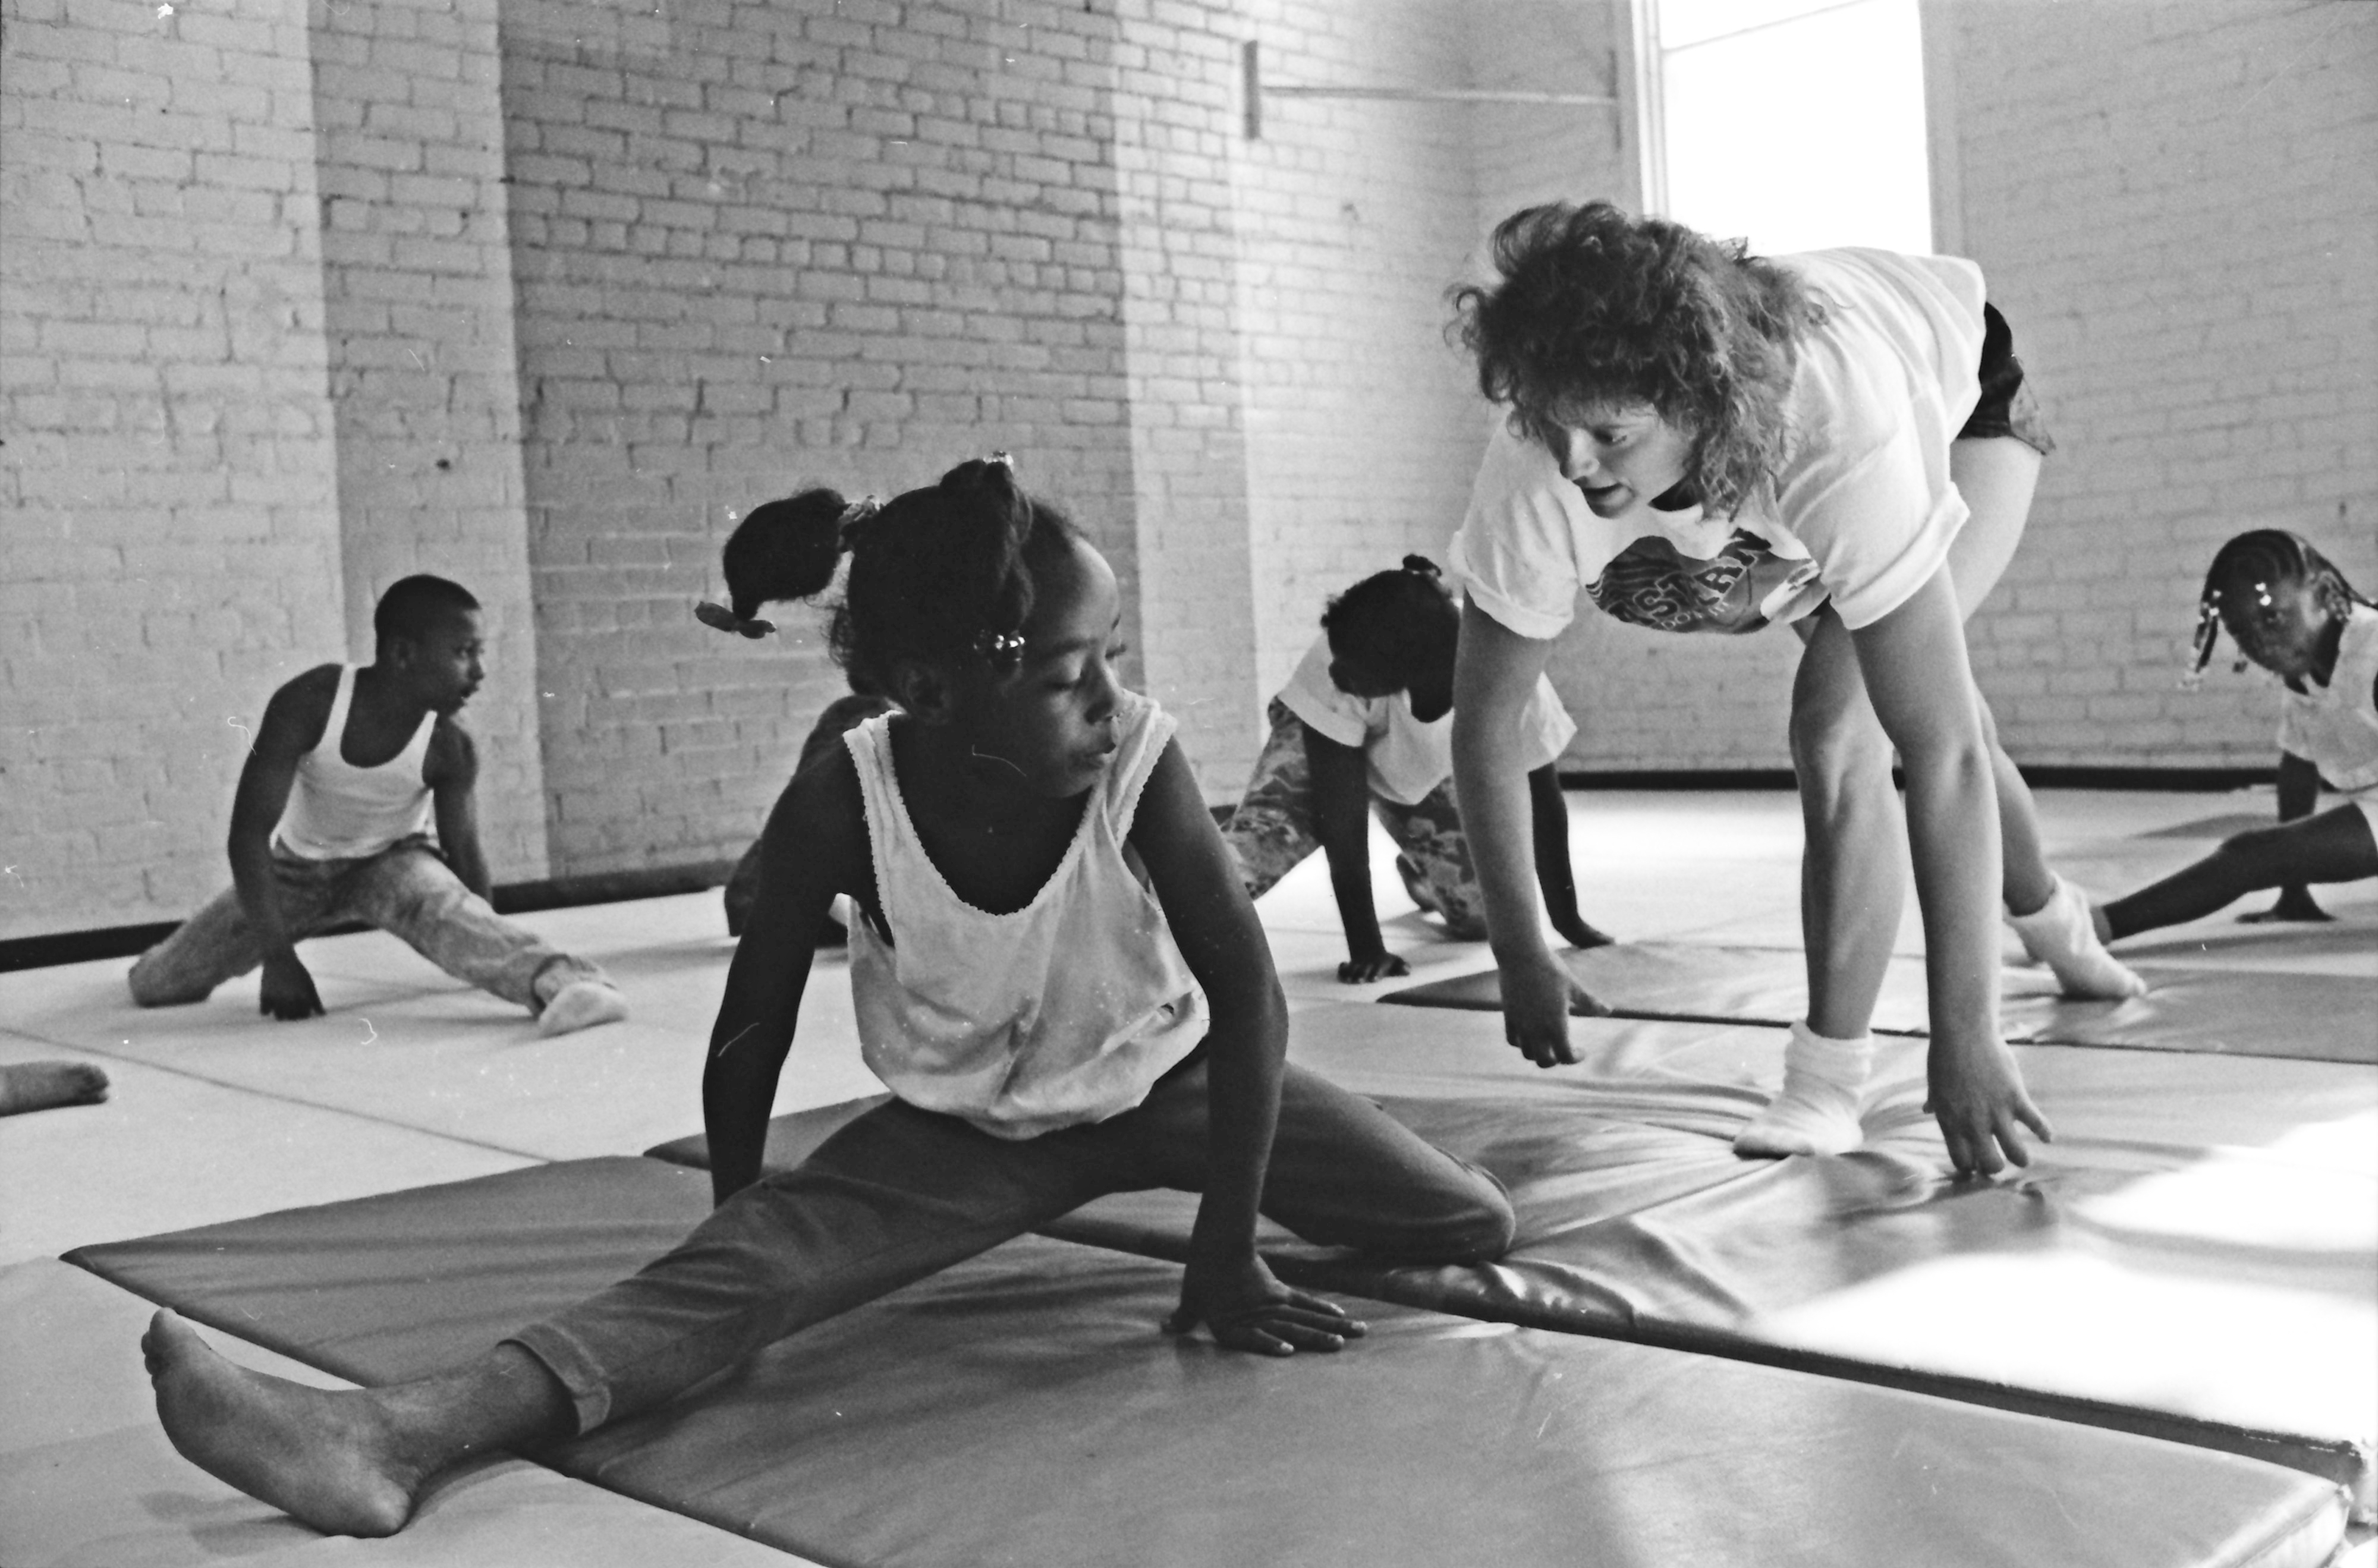 Preparation for Gymnastics Class, June 1991 image